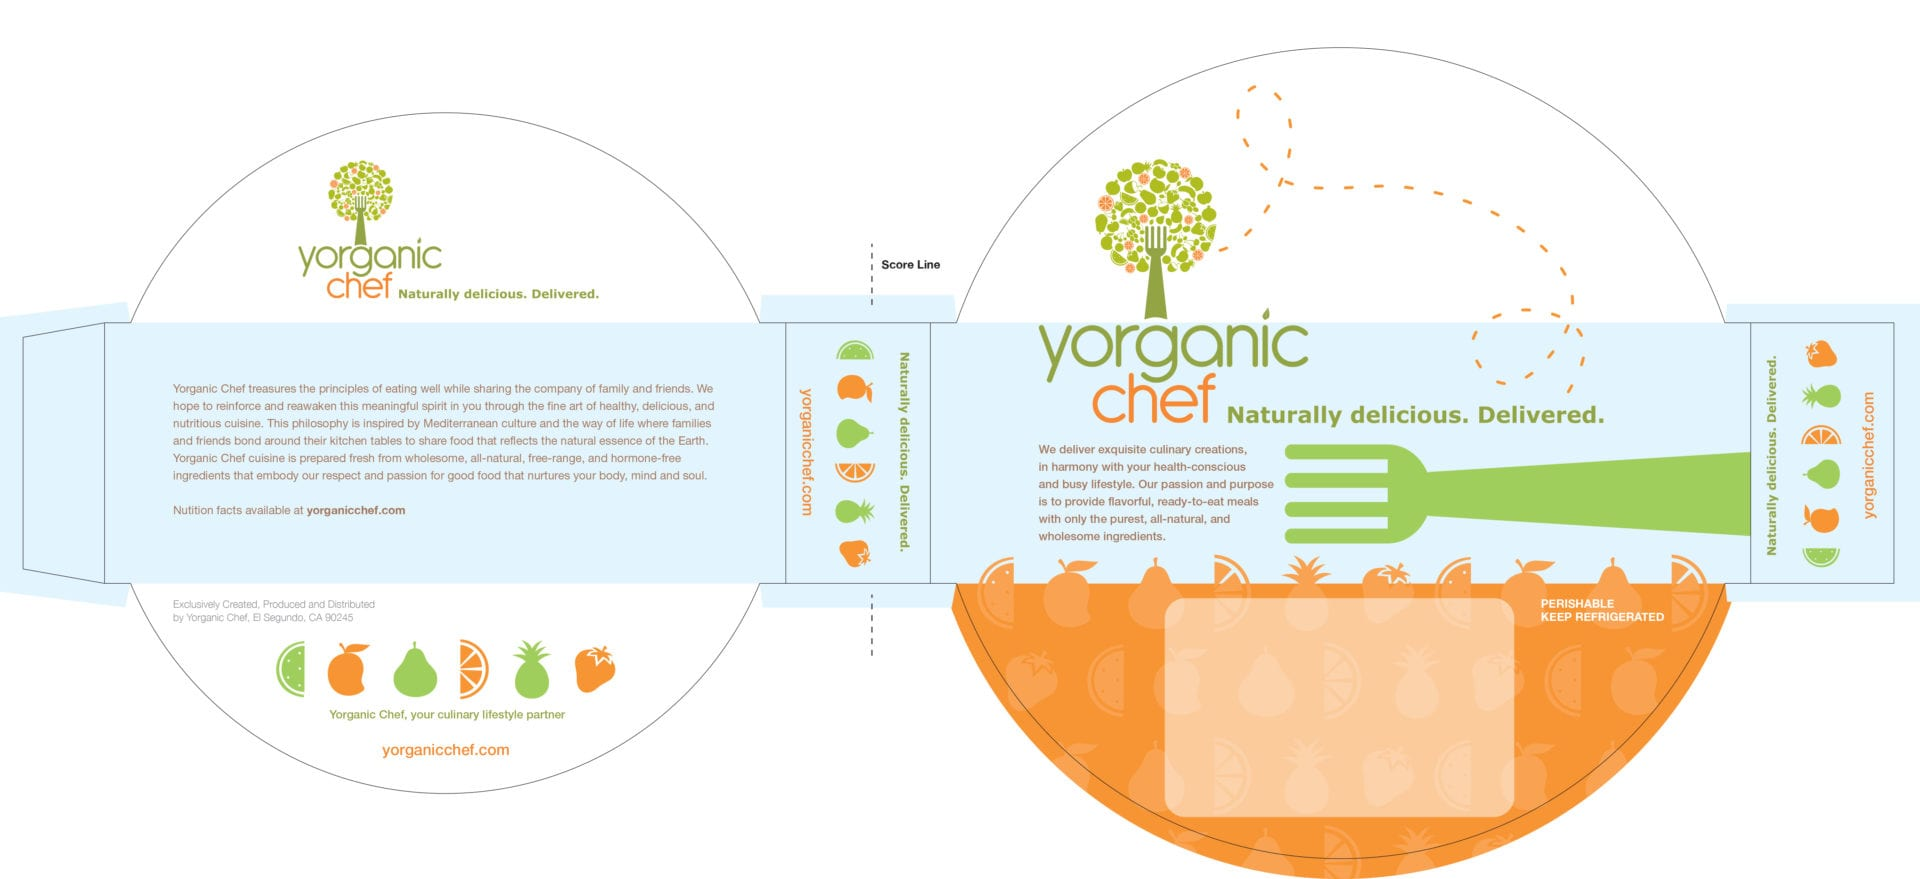 The layout design of the Yorganic Chef bowl cover